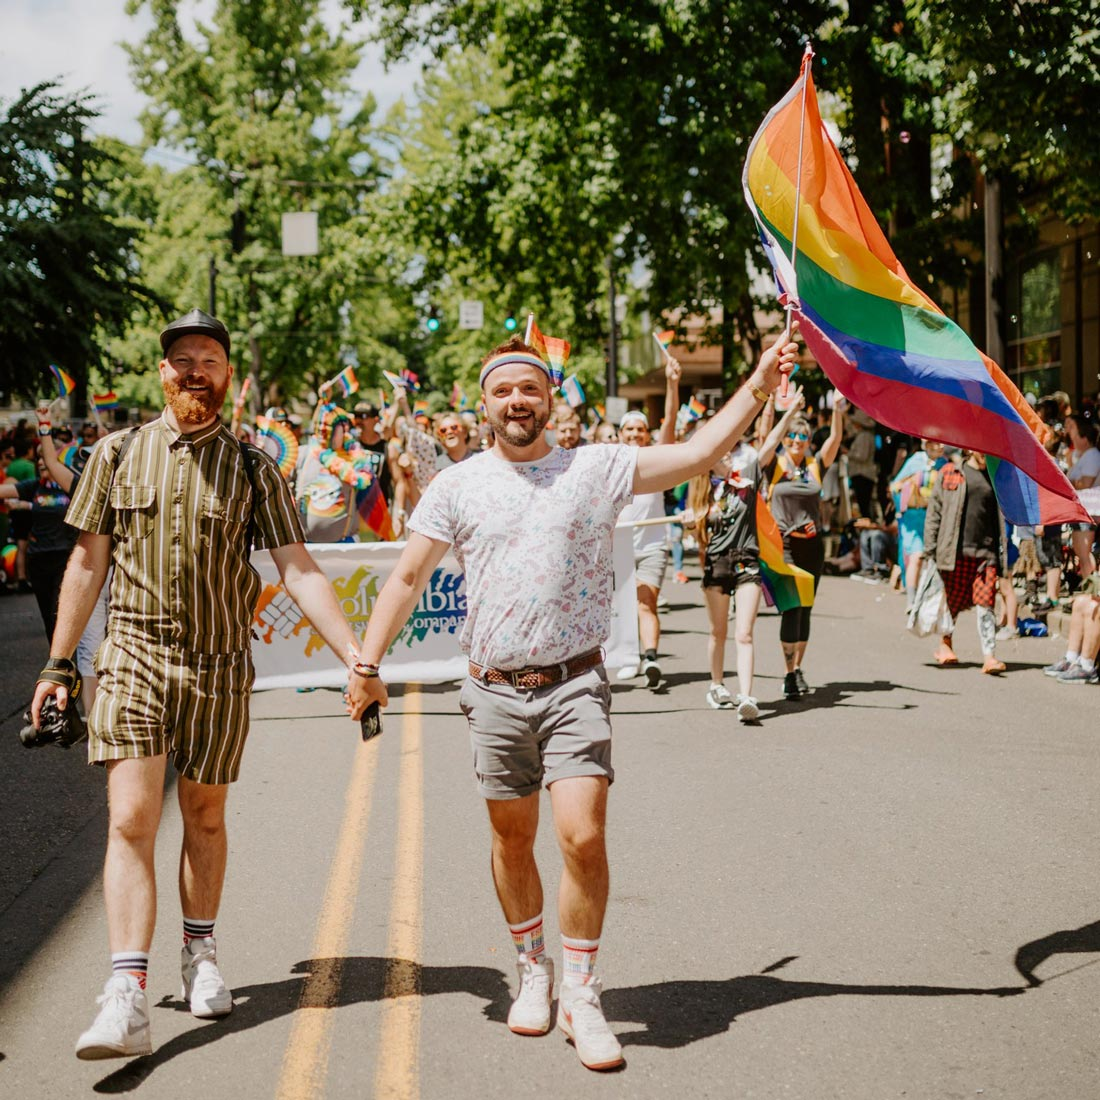 Portland-Pride-Gay-LGBTQ-Celebration-Oregon-Couple-of-Men-hand-in-hand-1